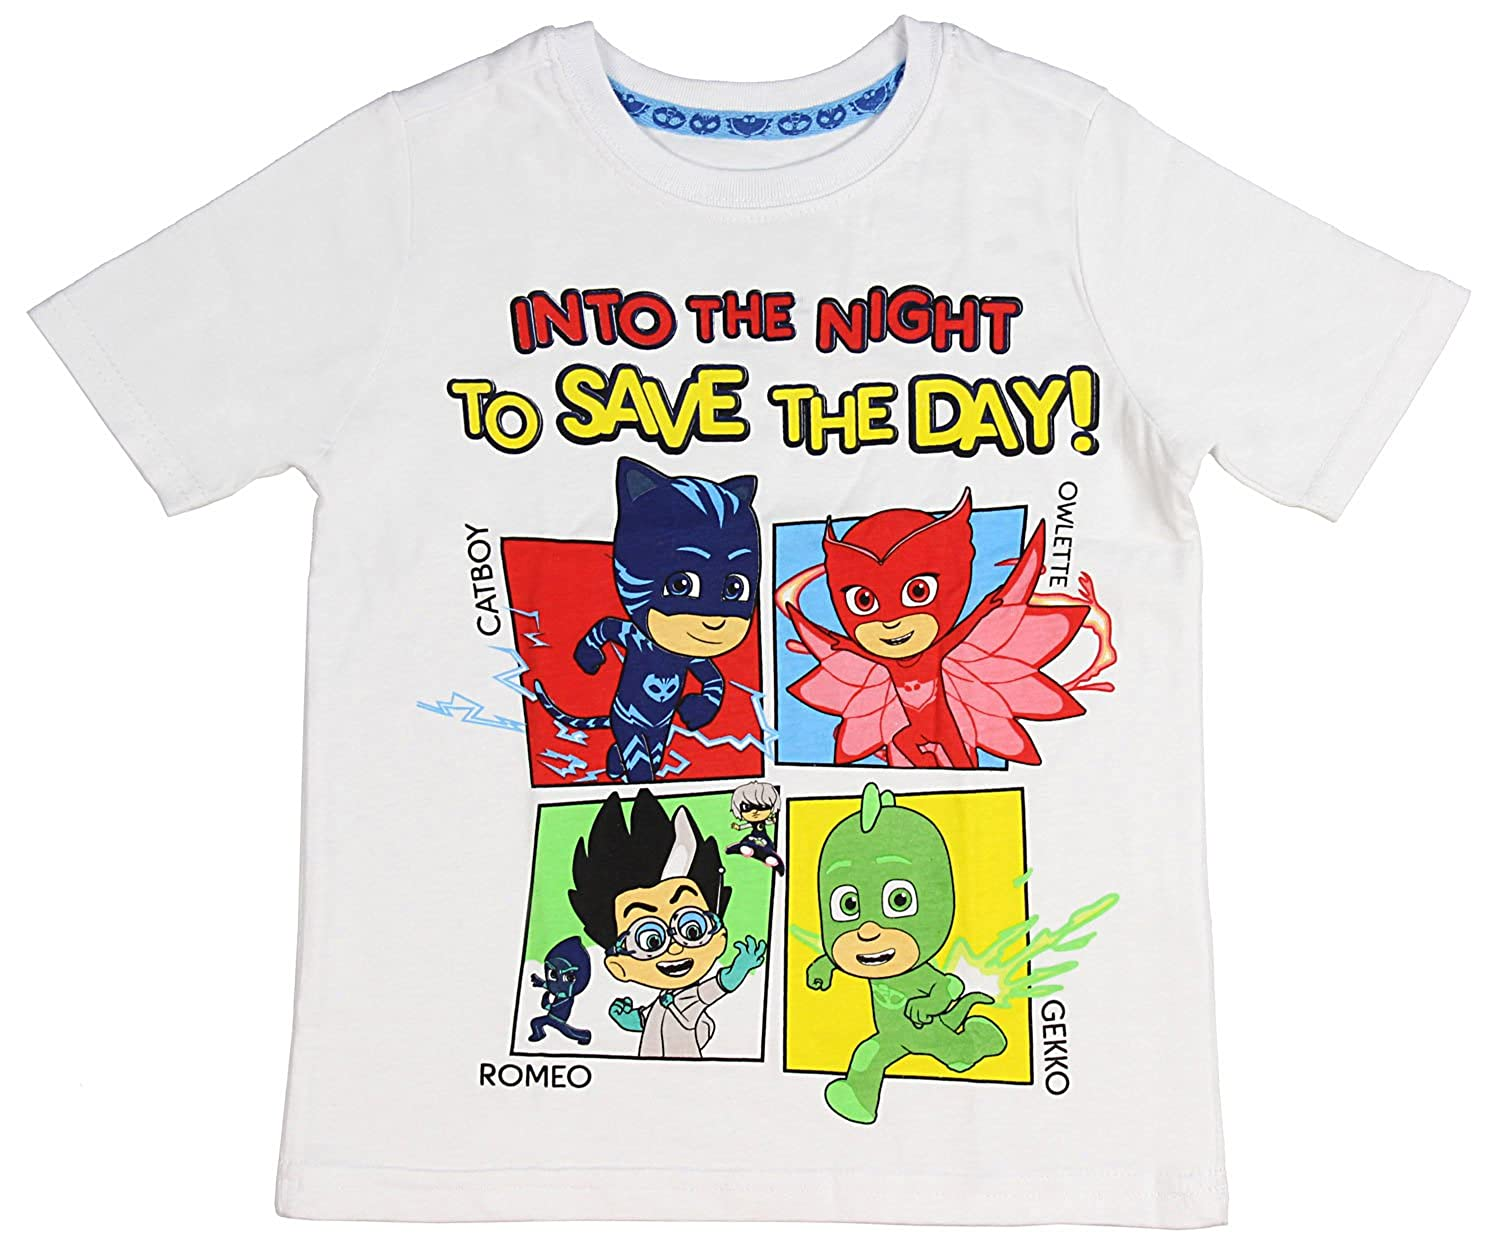 27507544e4421 PJ Masks Little Boys' Toddler Into The Night Character T-Shirt